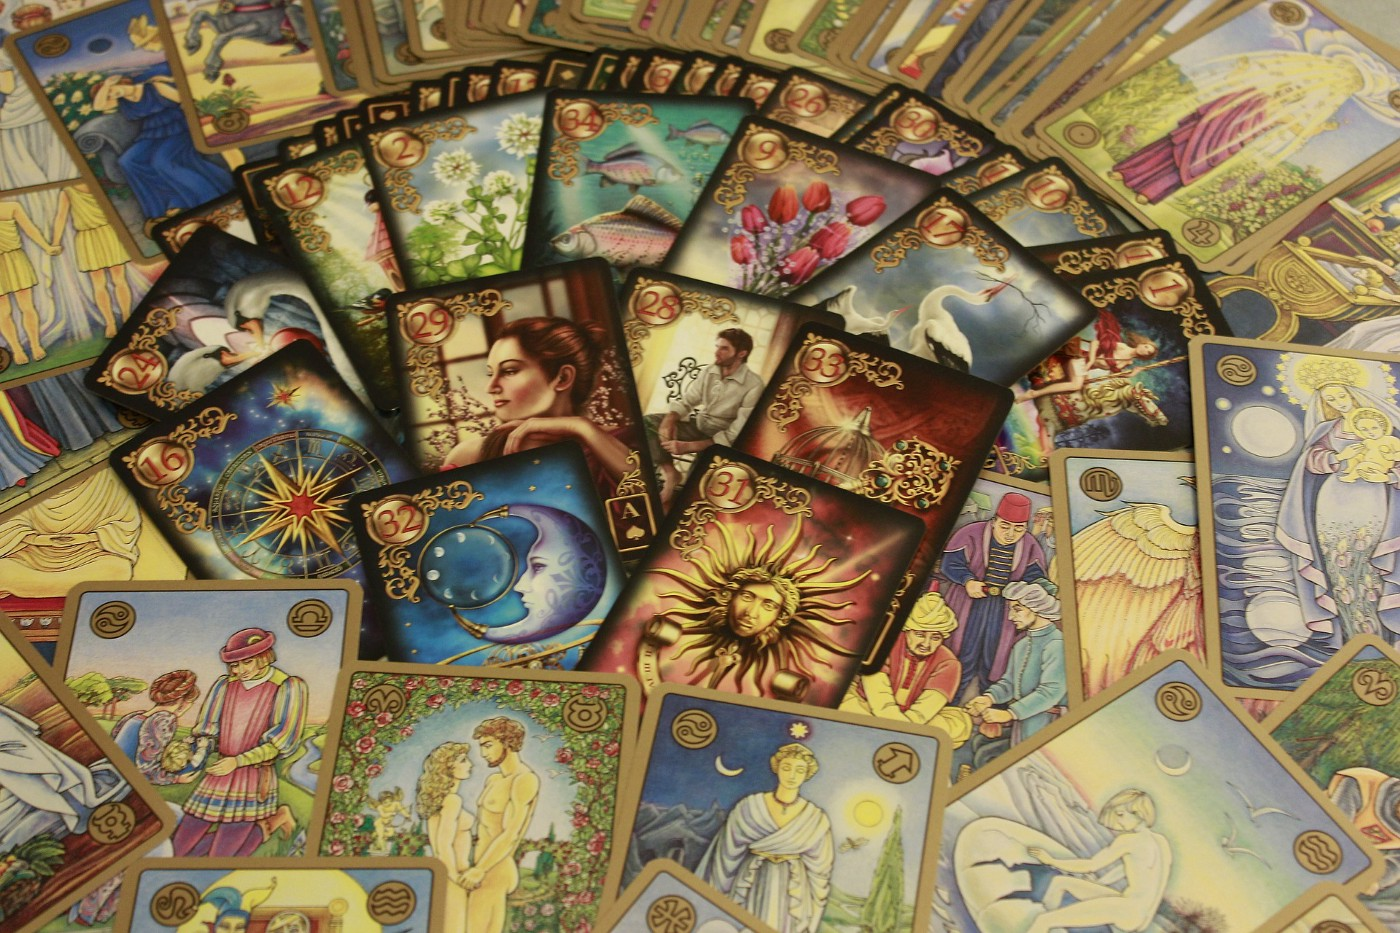 A deck of tarot cards laid out